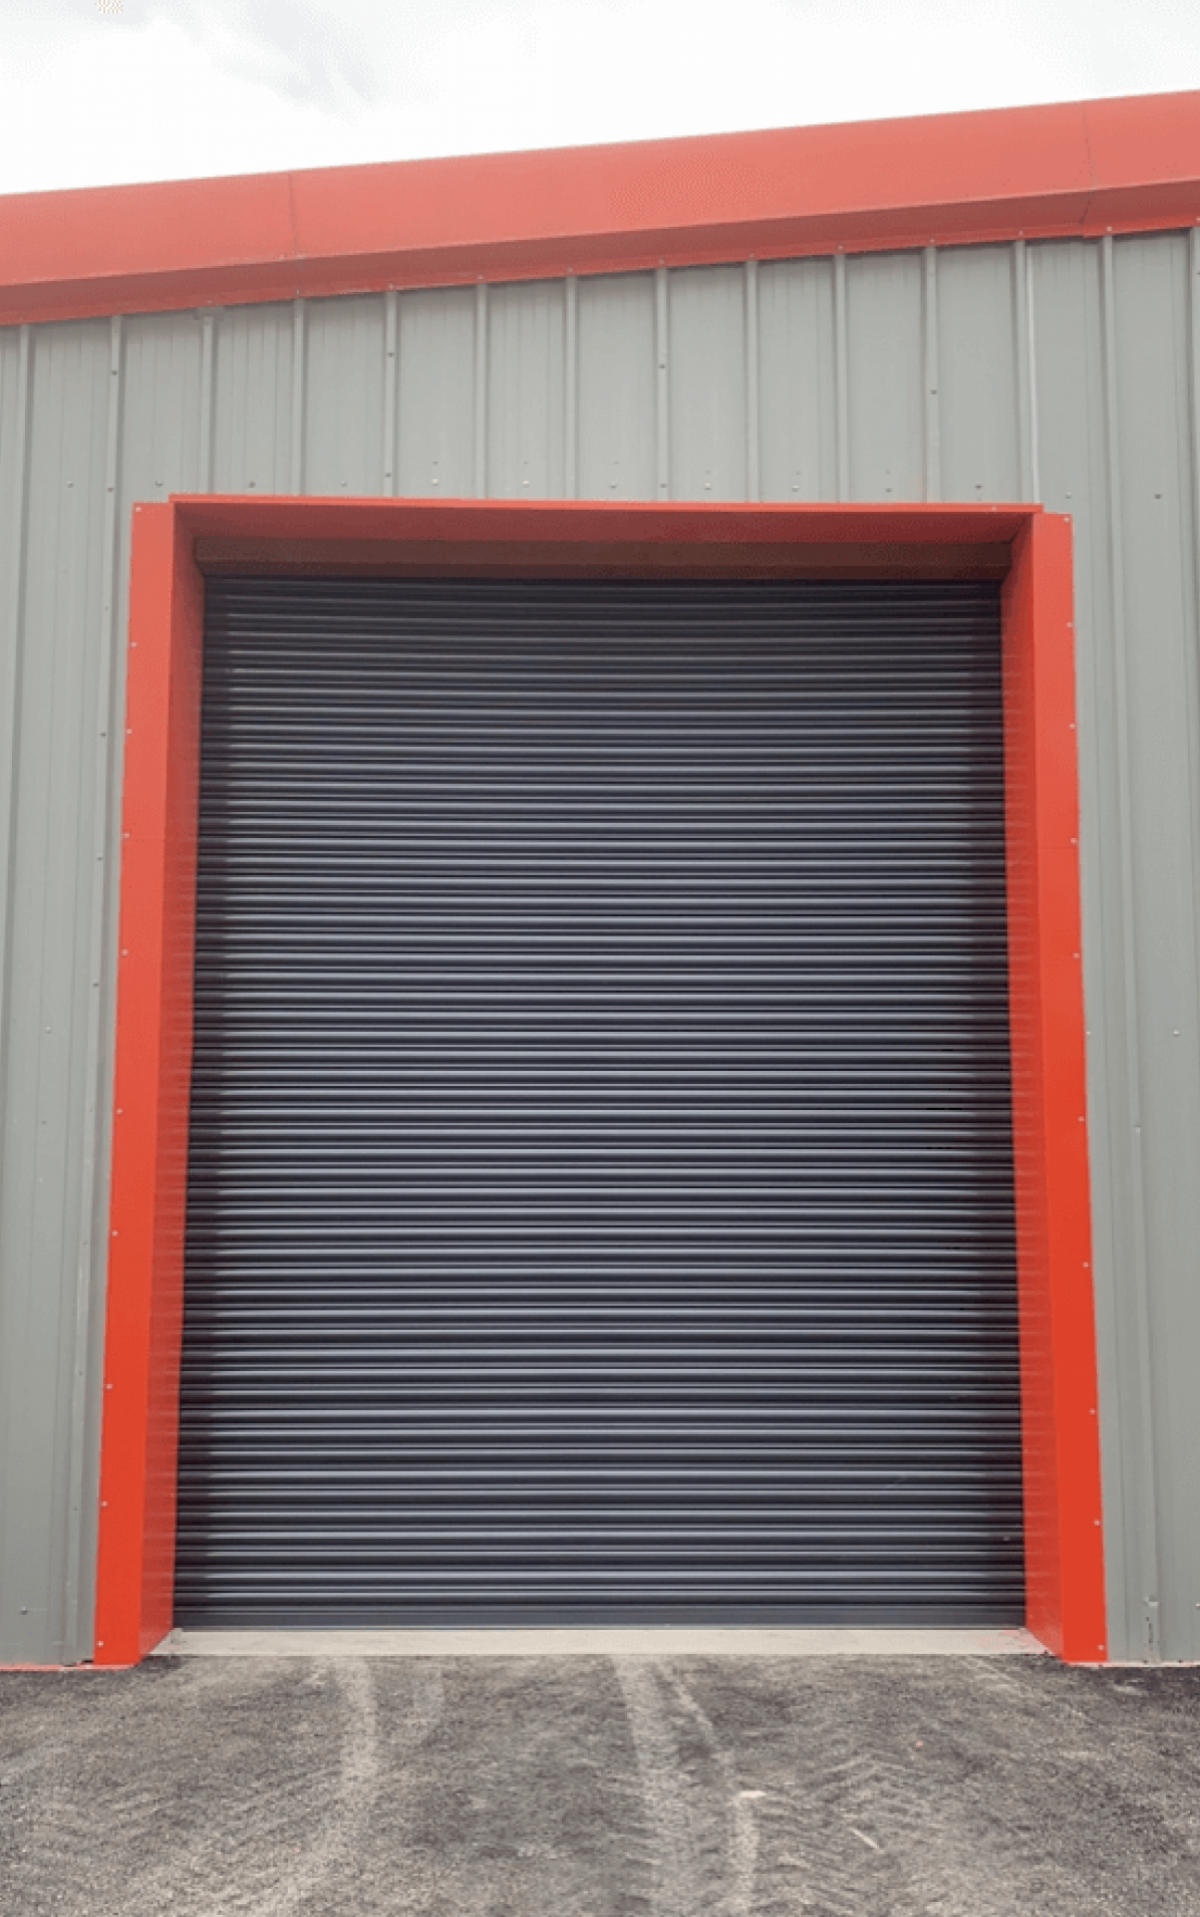 Grey door with red border on warehouse